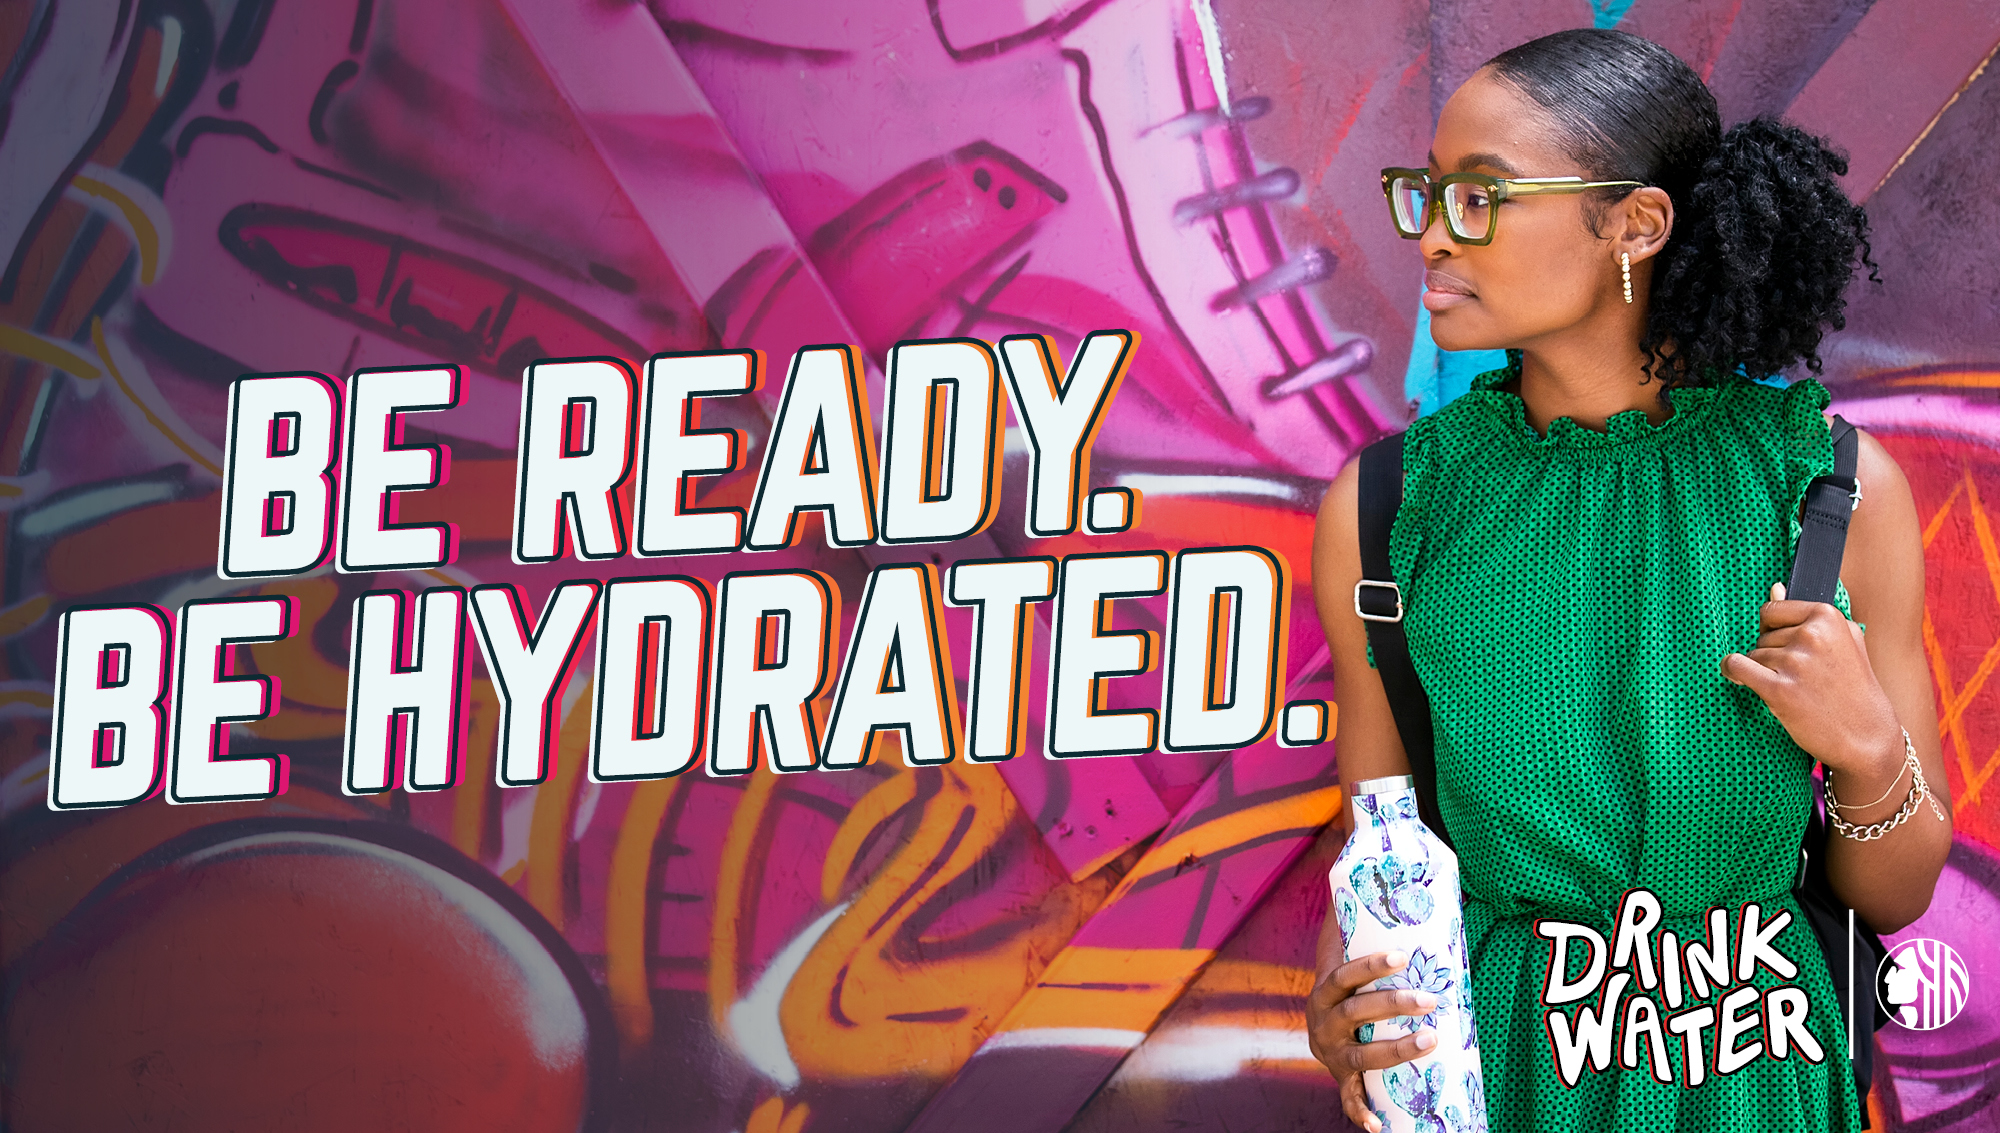 Be Ready Be Hydrated ad of woman with water bottle